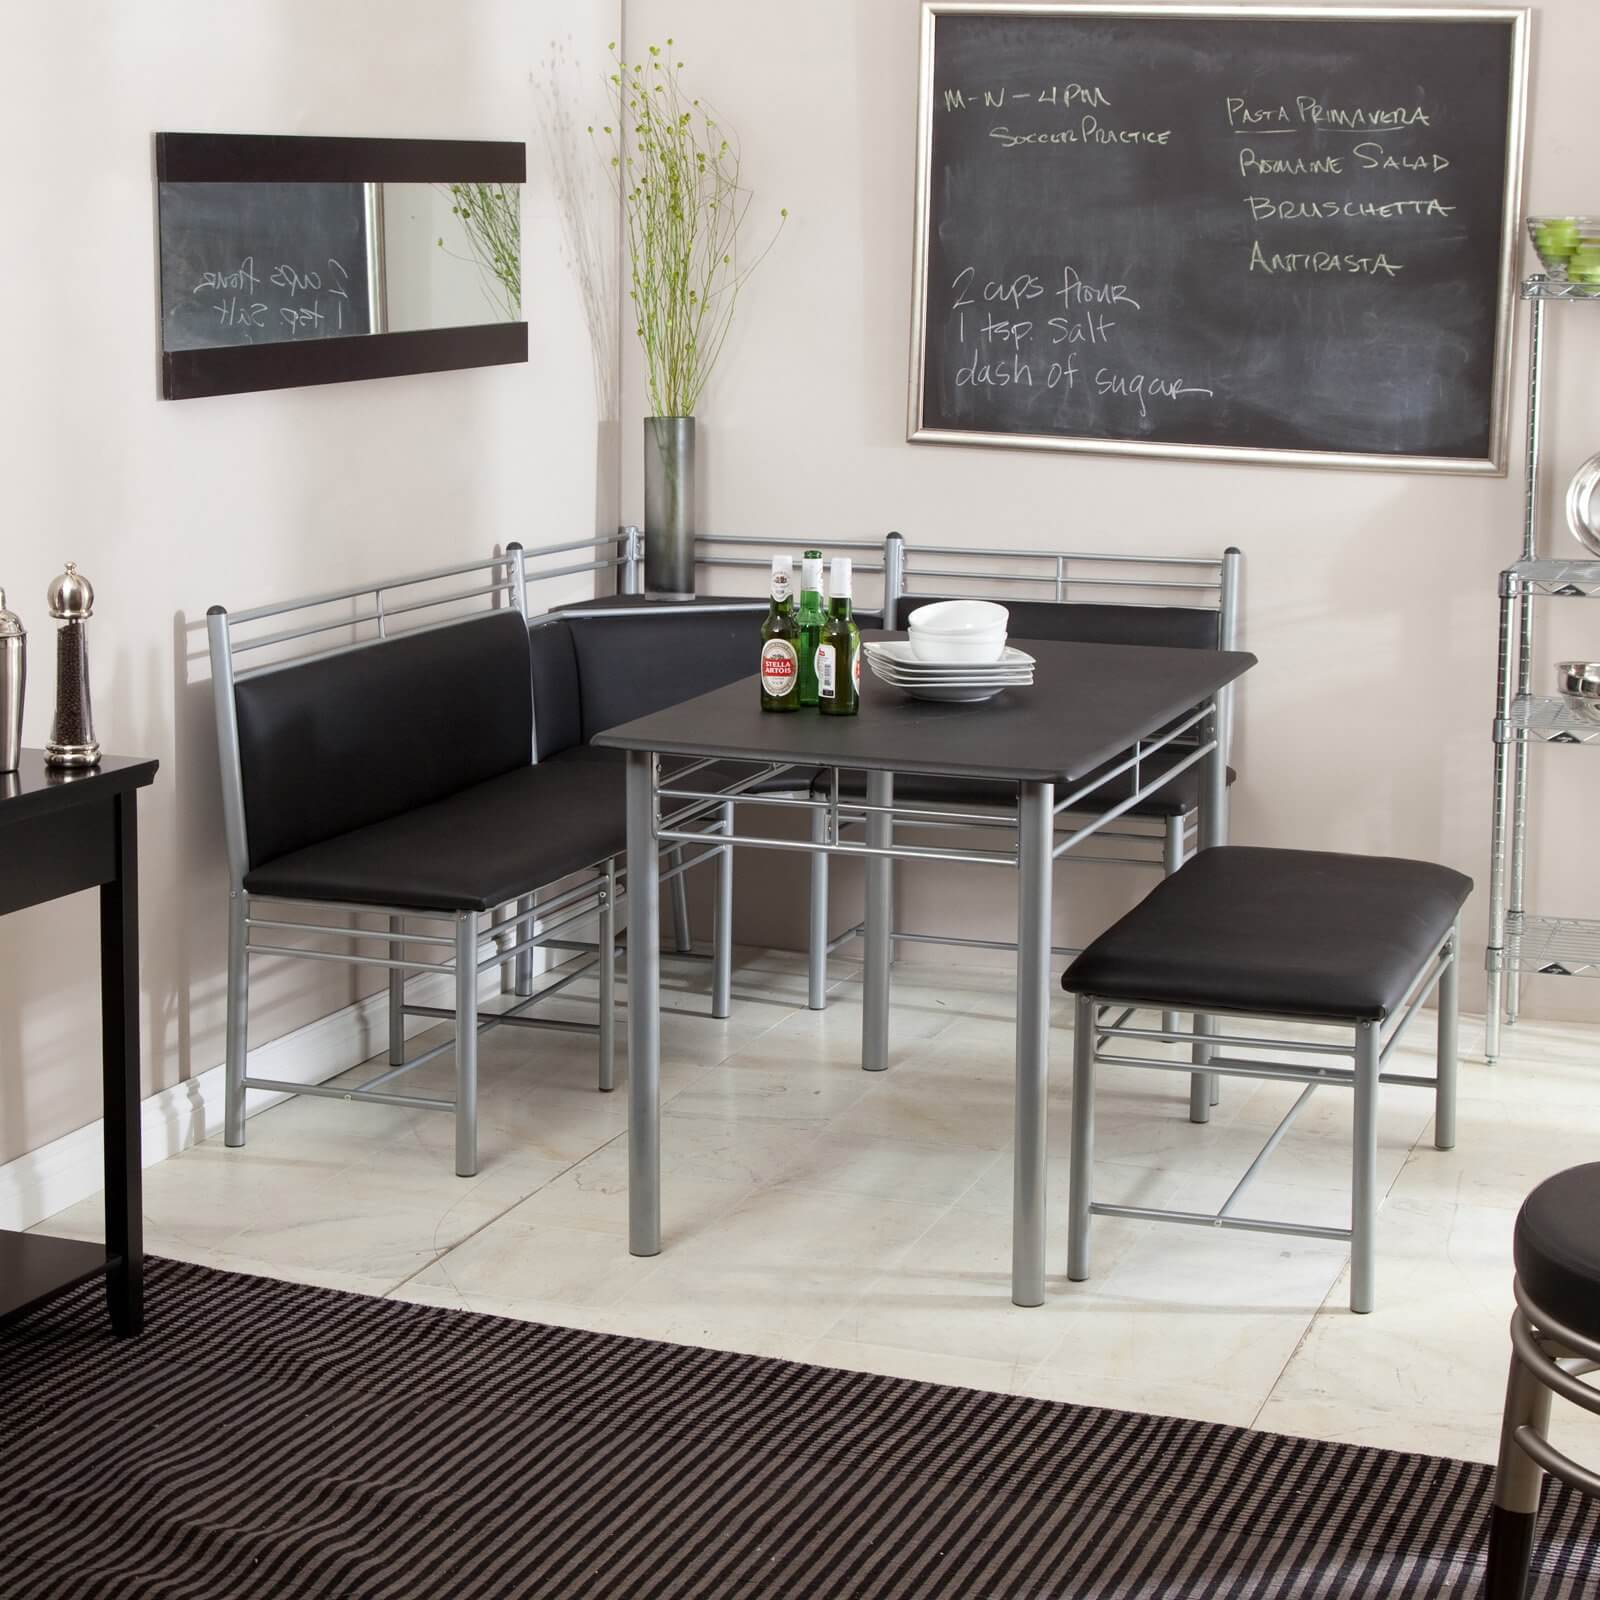 12. Modern Breakfast Nook Set